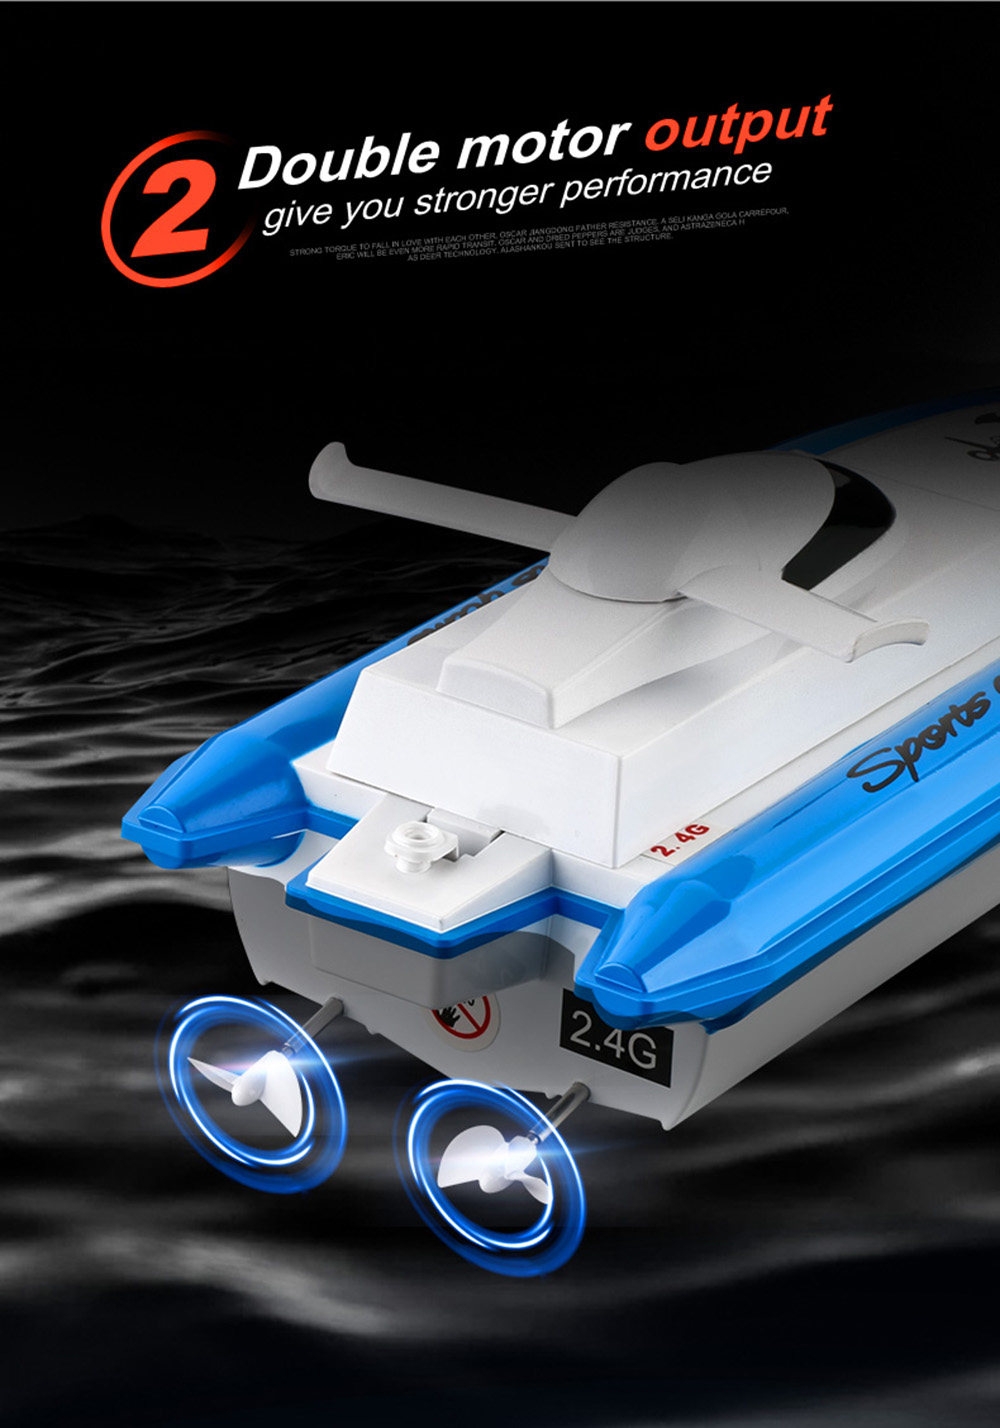 2.4G RC Boat High-speed Speed Boat Yacht Children Racing Boat Water Toy Upgraded Version - Red One Battery